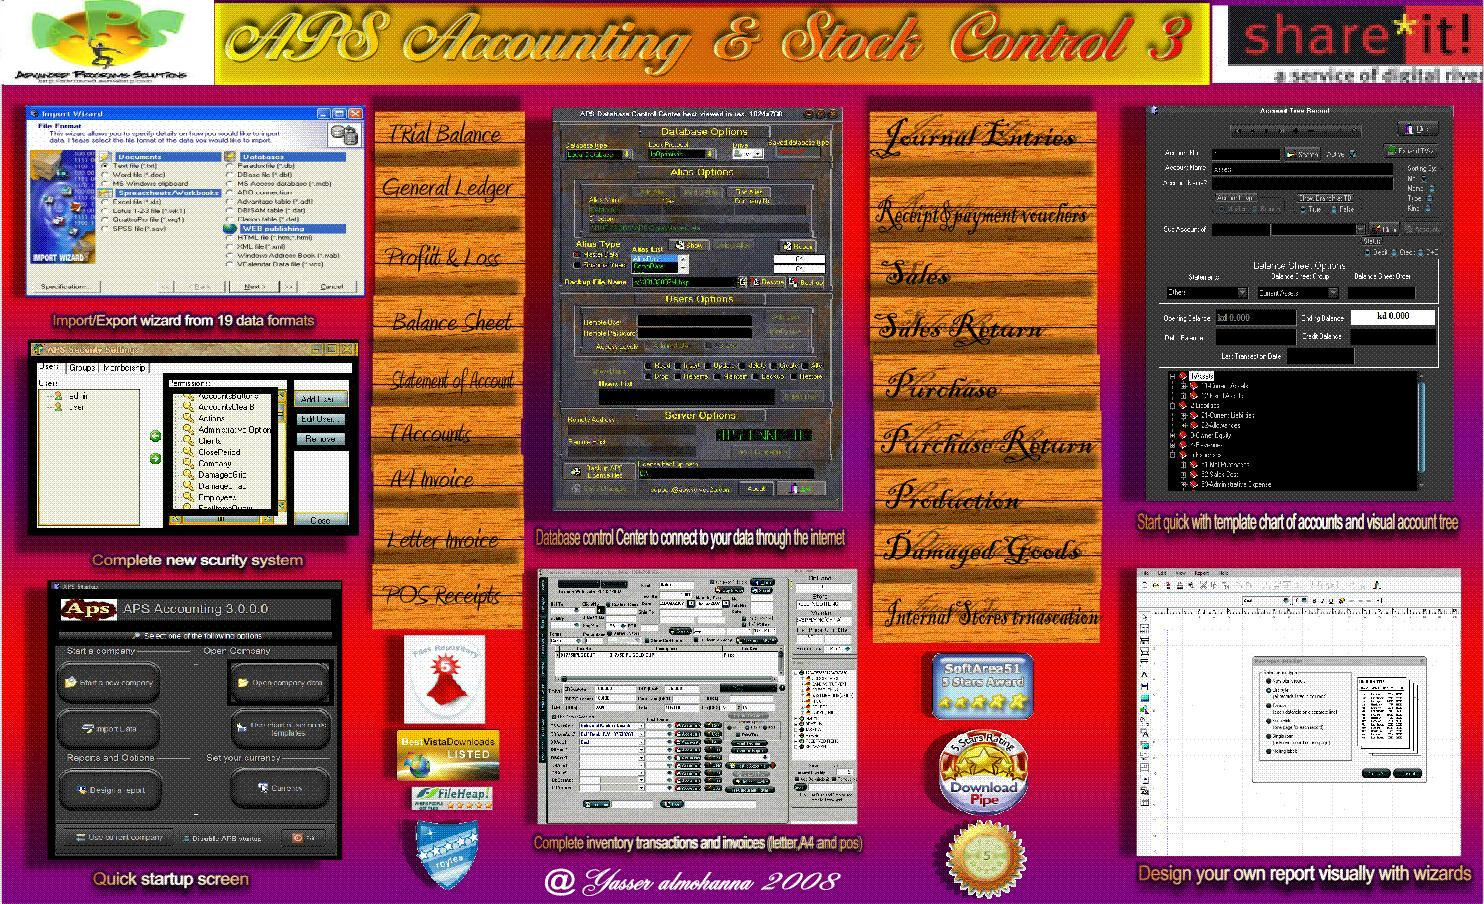 APS Accounting & Stock Control